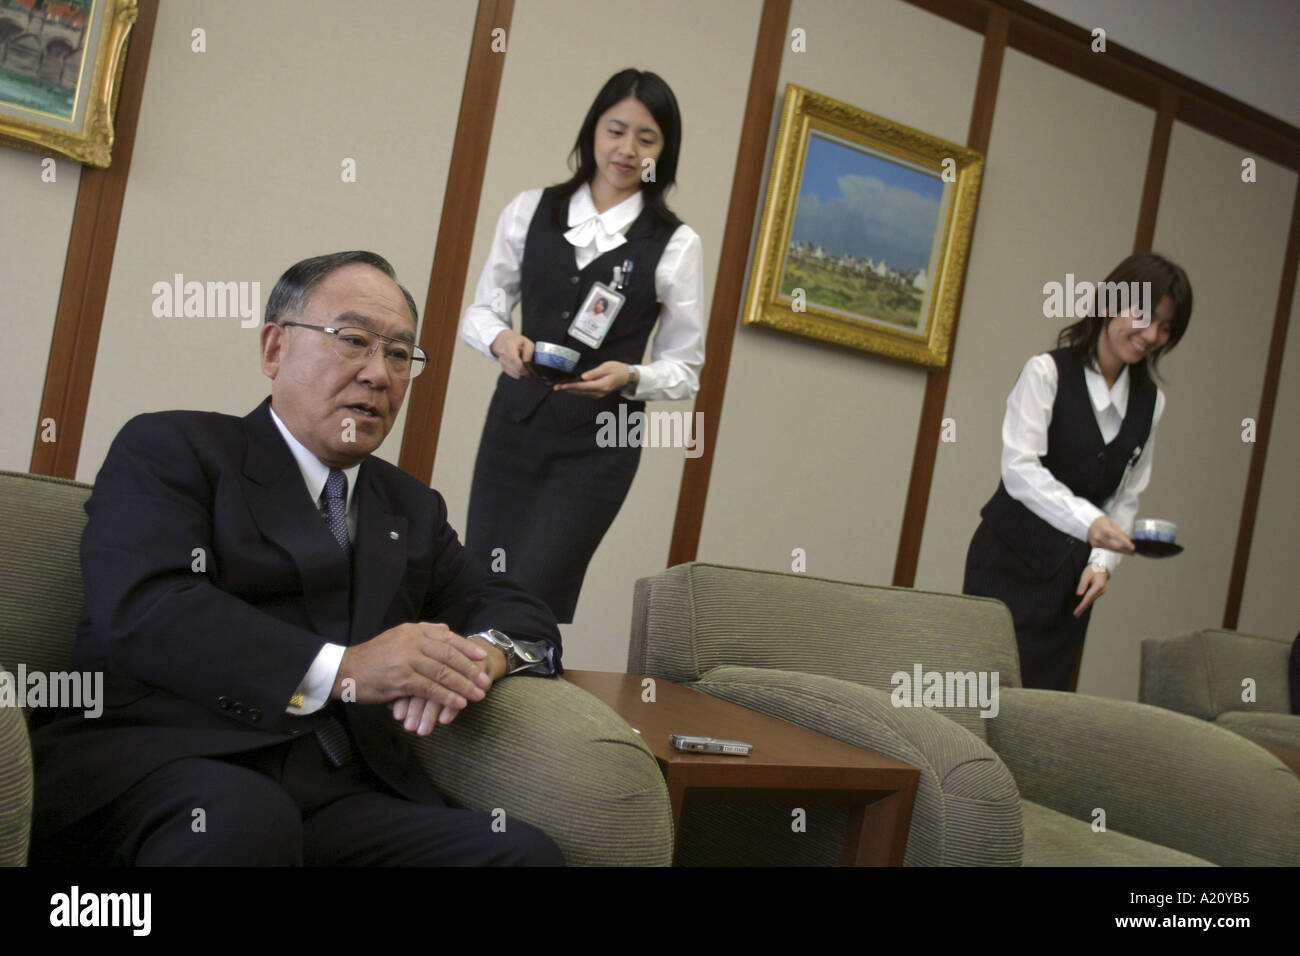 Fujio Mitarai President and CEO of Canon Inc one of the leading Japanese electronics and camera manufacturing companies - Stock Image